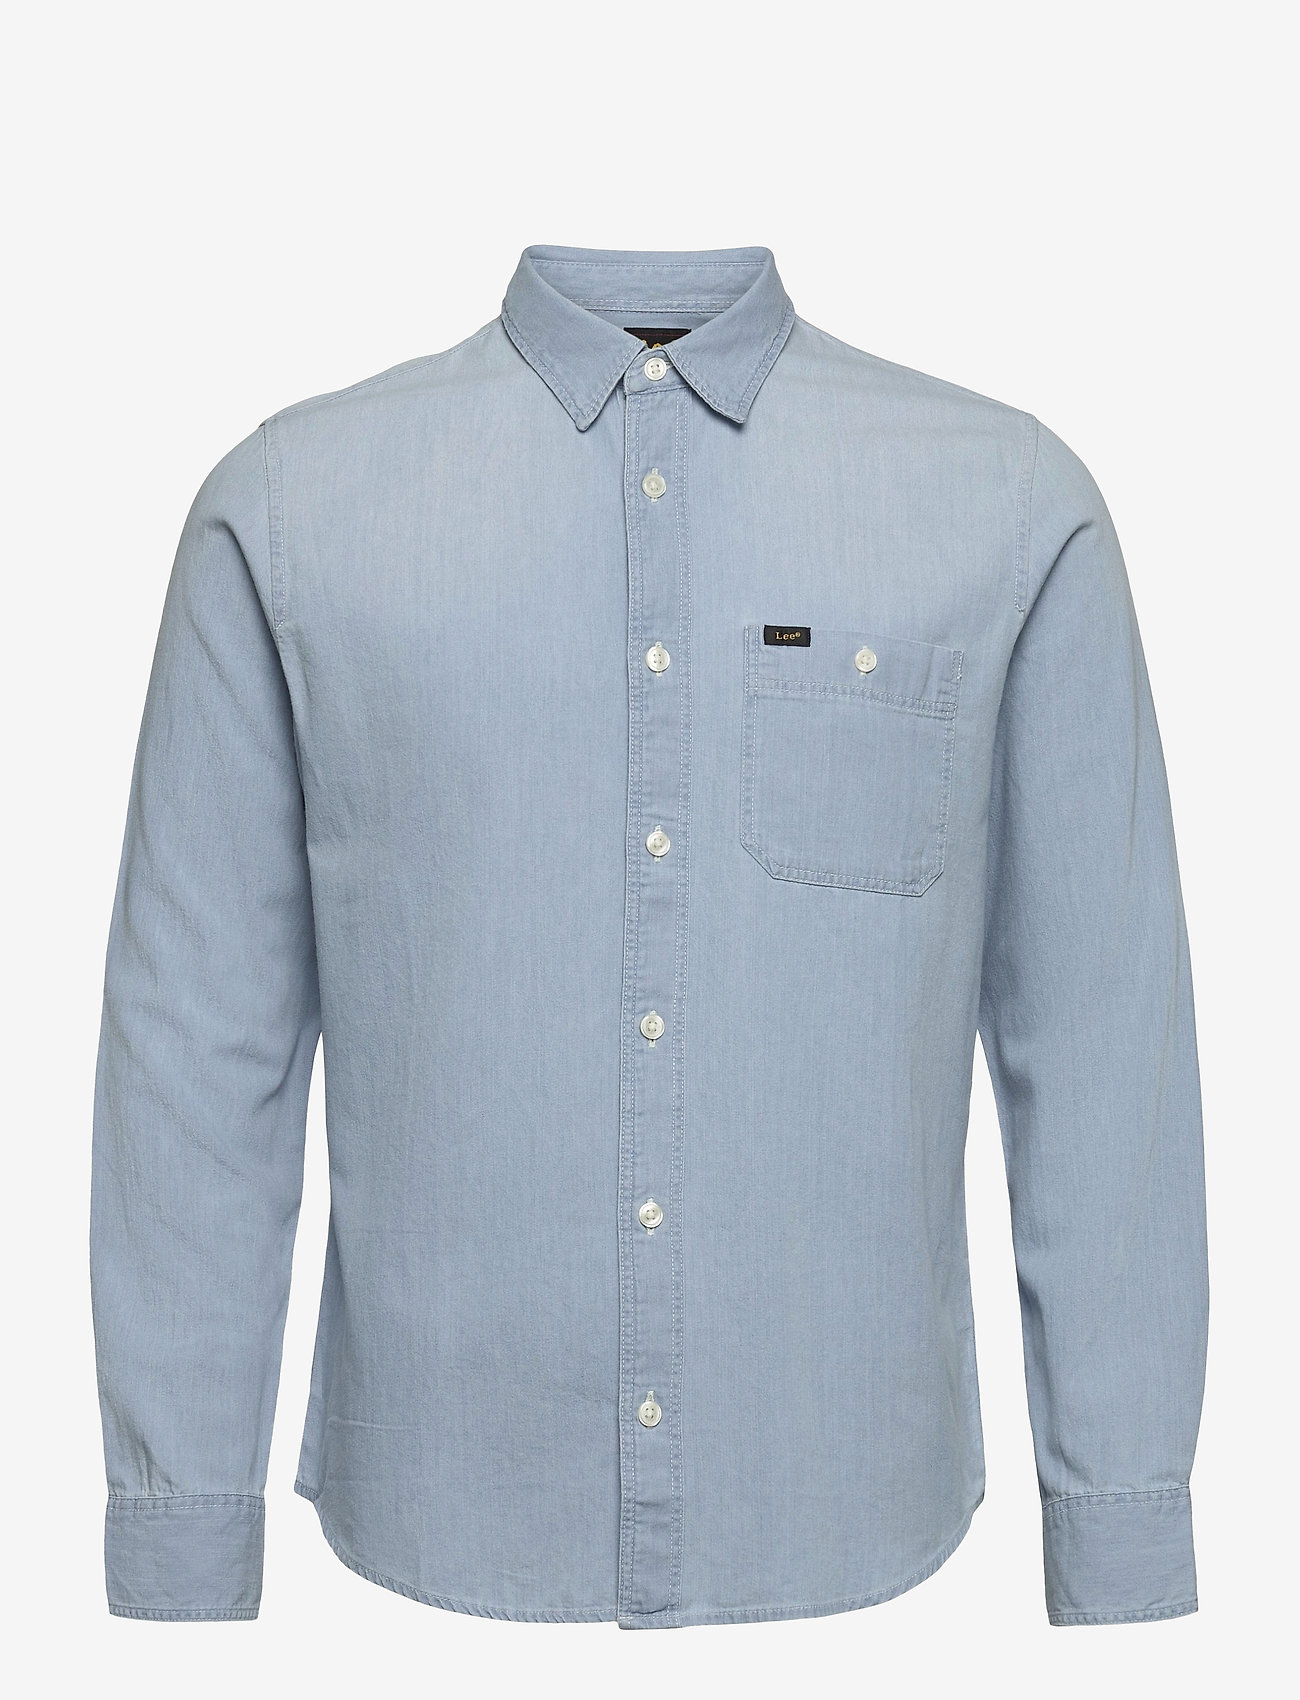 Lee Jeans - LEE ONE POCKET SHIRT - denim shirts - summer blue - 0